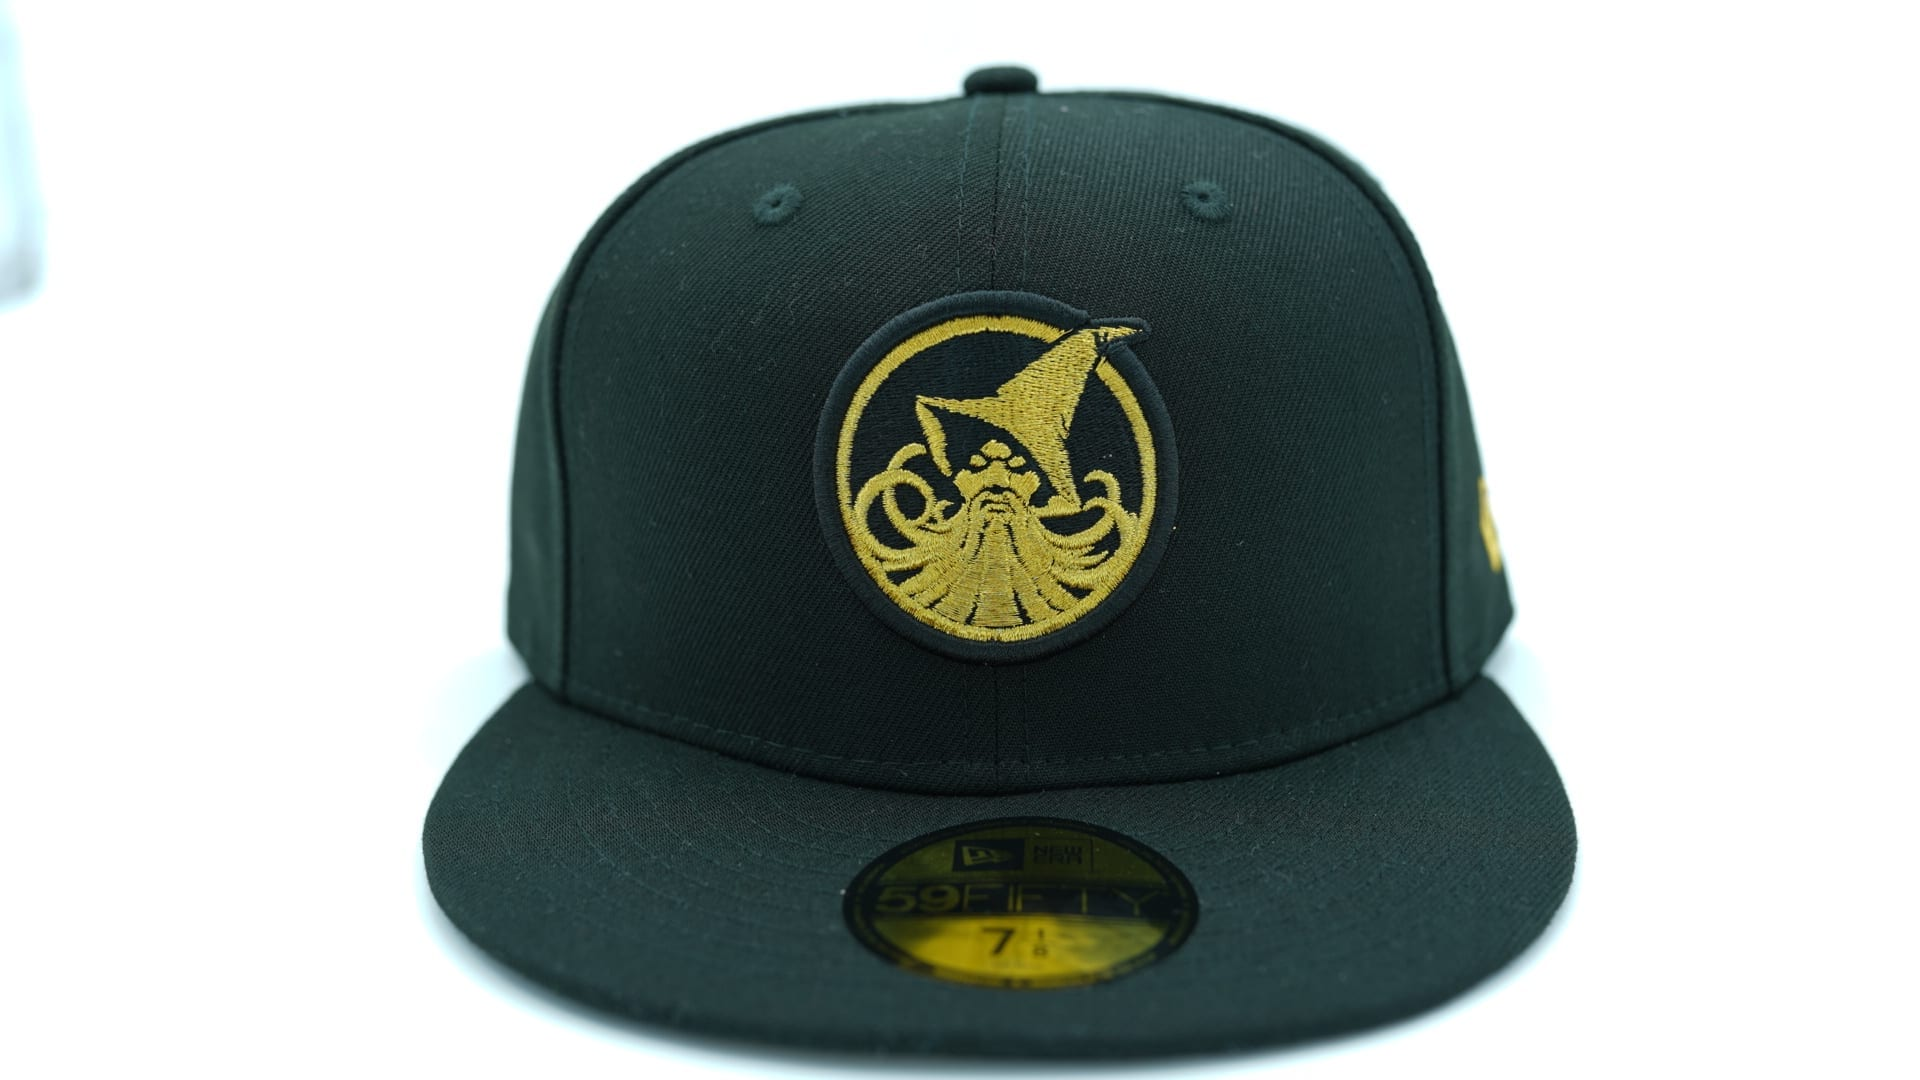 Miami Heat Trophy Champ Black 59Fifty Fitted Cap by NEW ERA x NBA